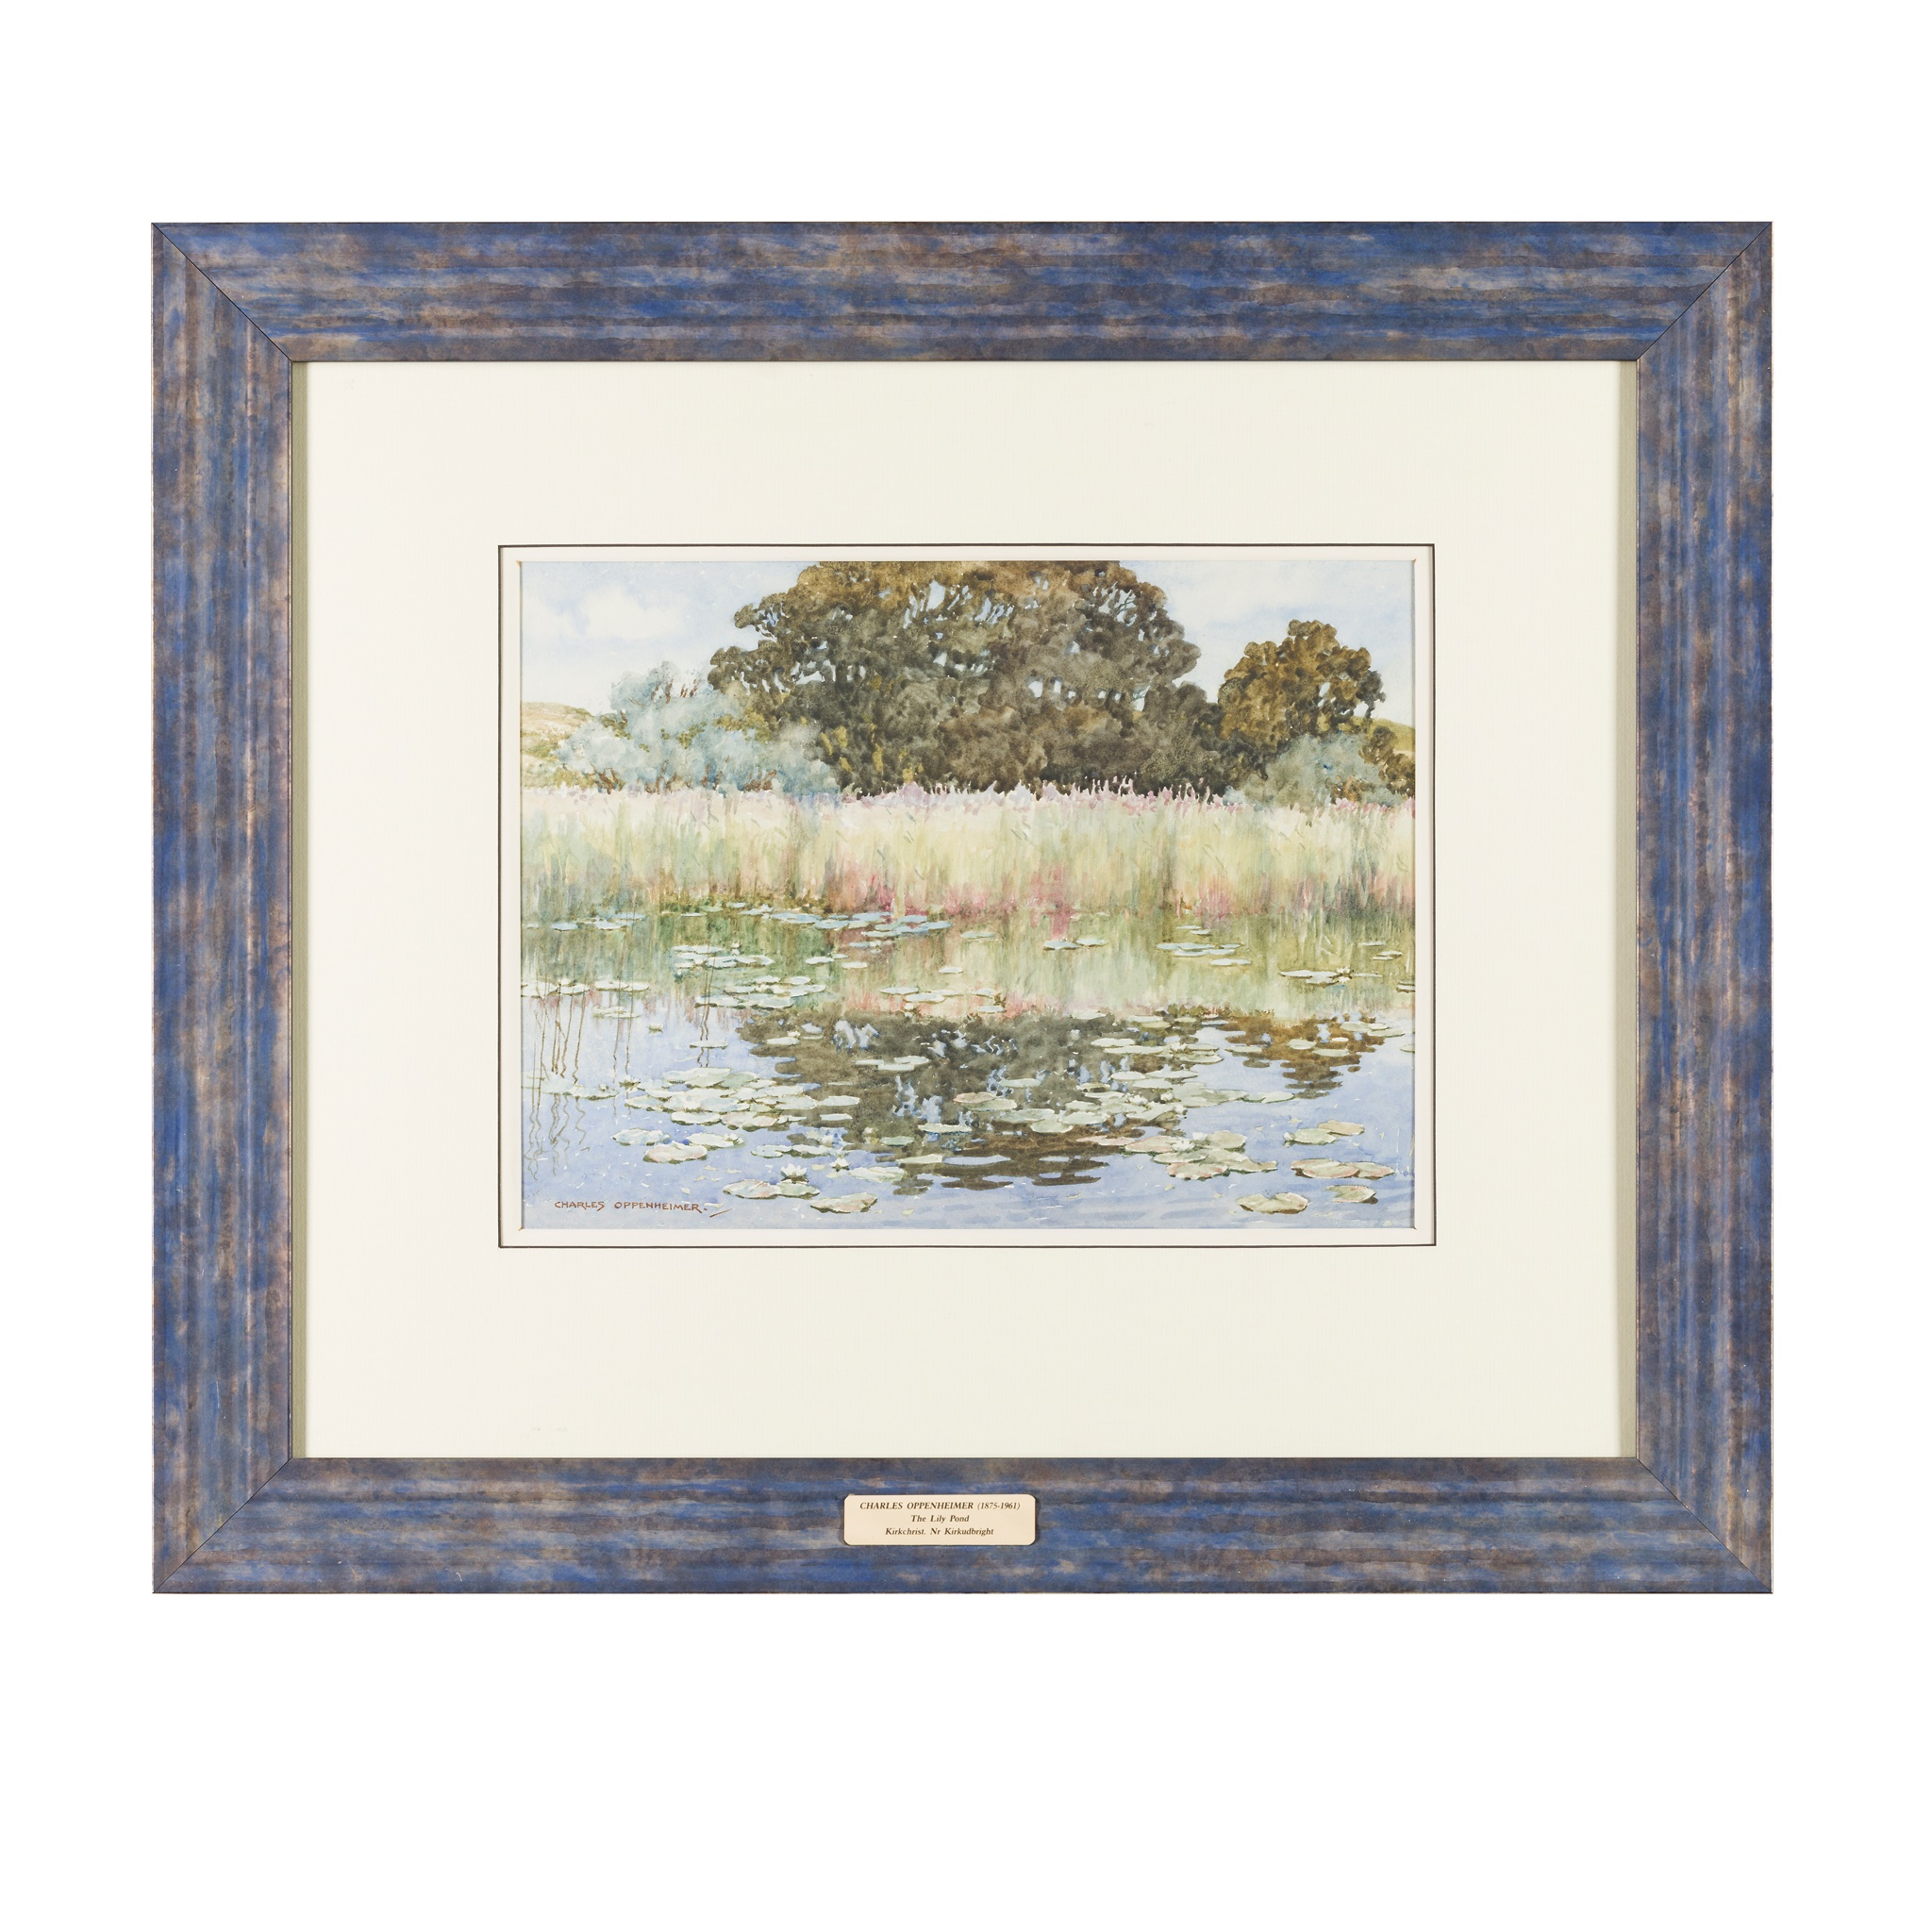 § CHARLES OPPENHEIMER R.S.A., R.S.W (SCOTTISH 1876-1961) THE LILY POND - Image 2 of 3